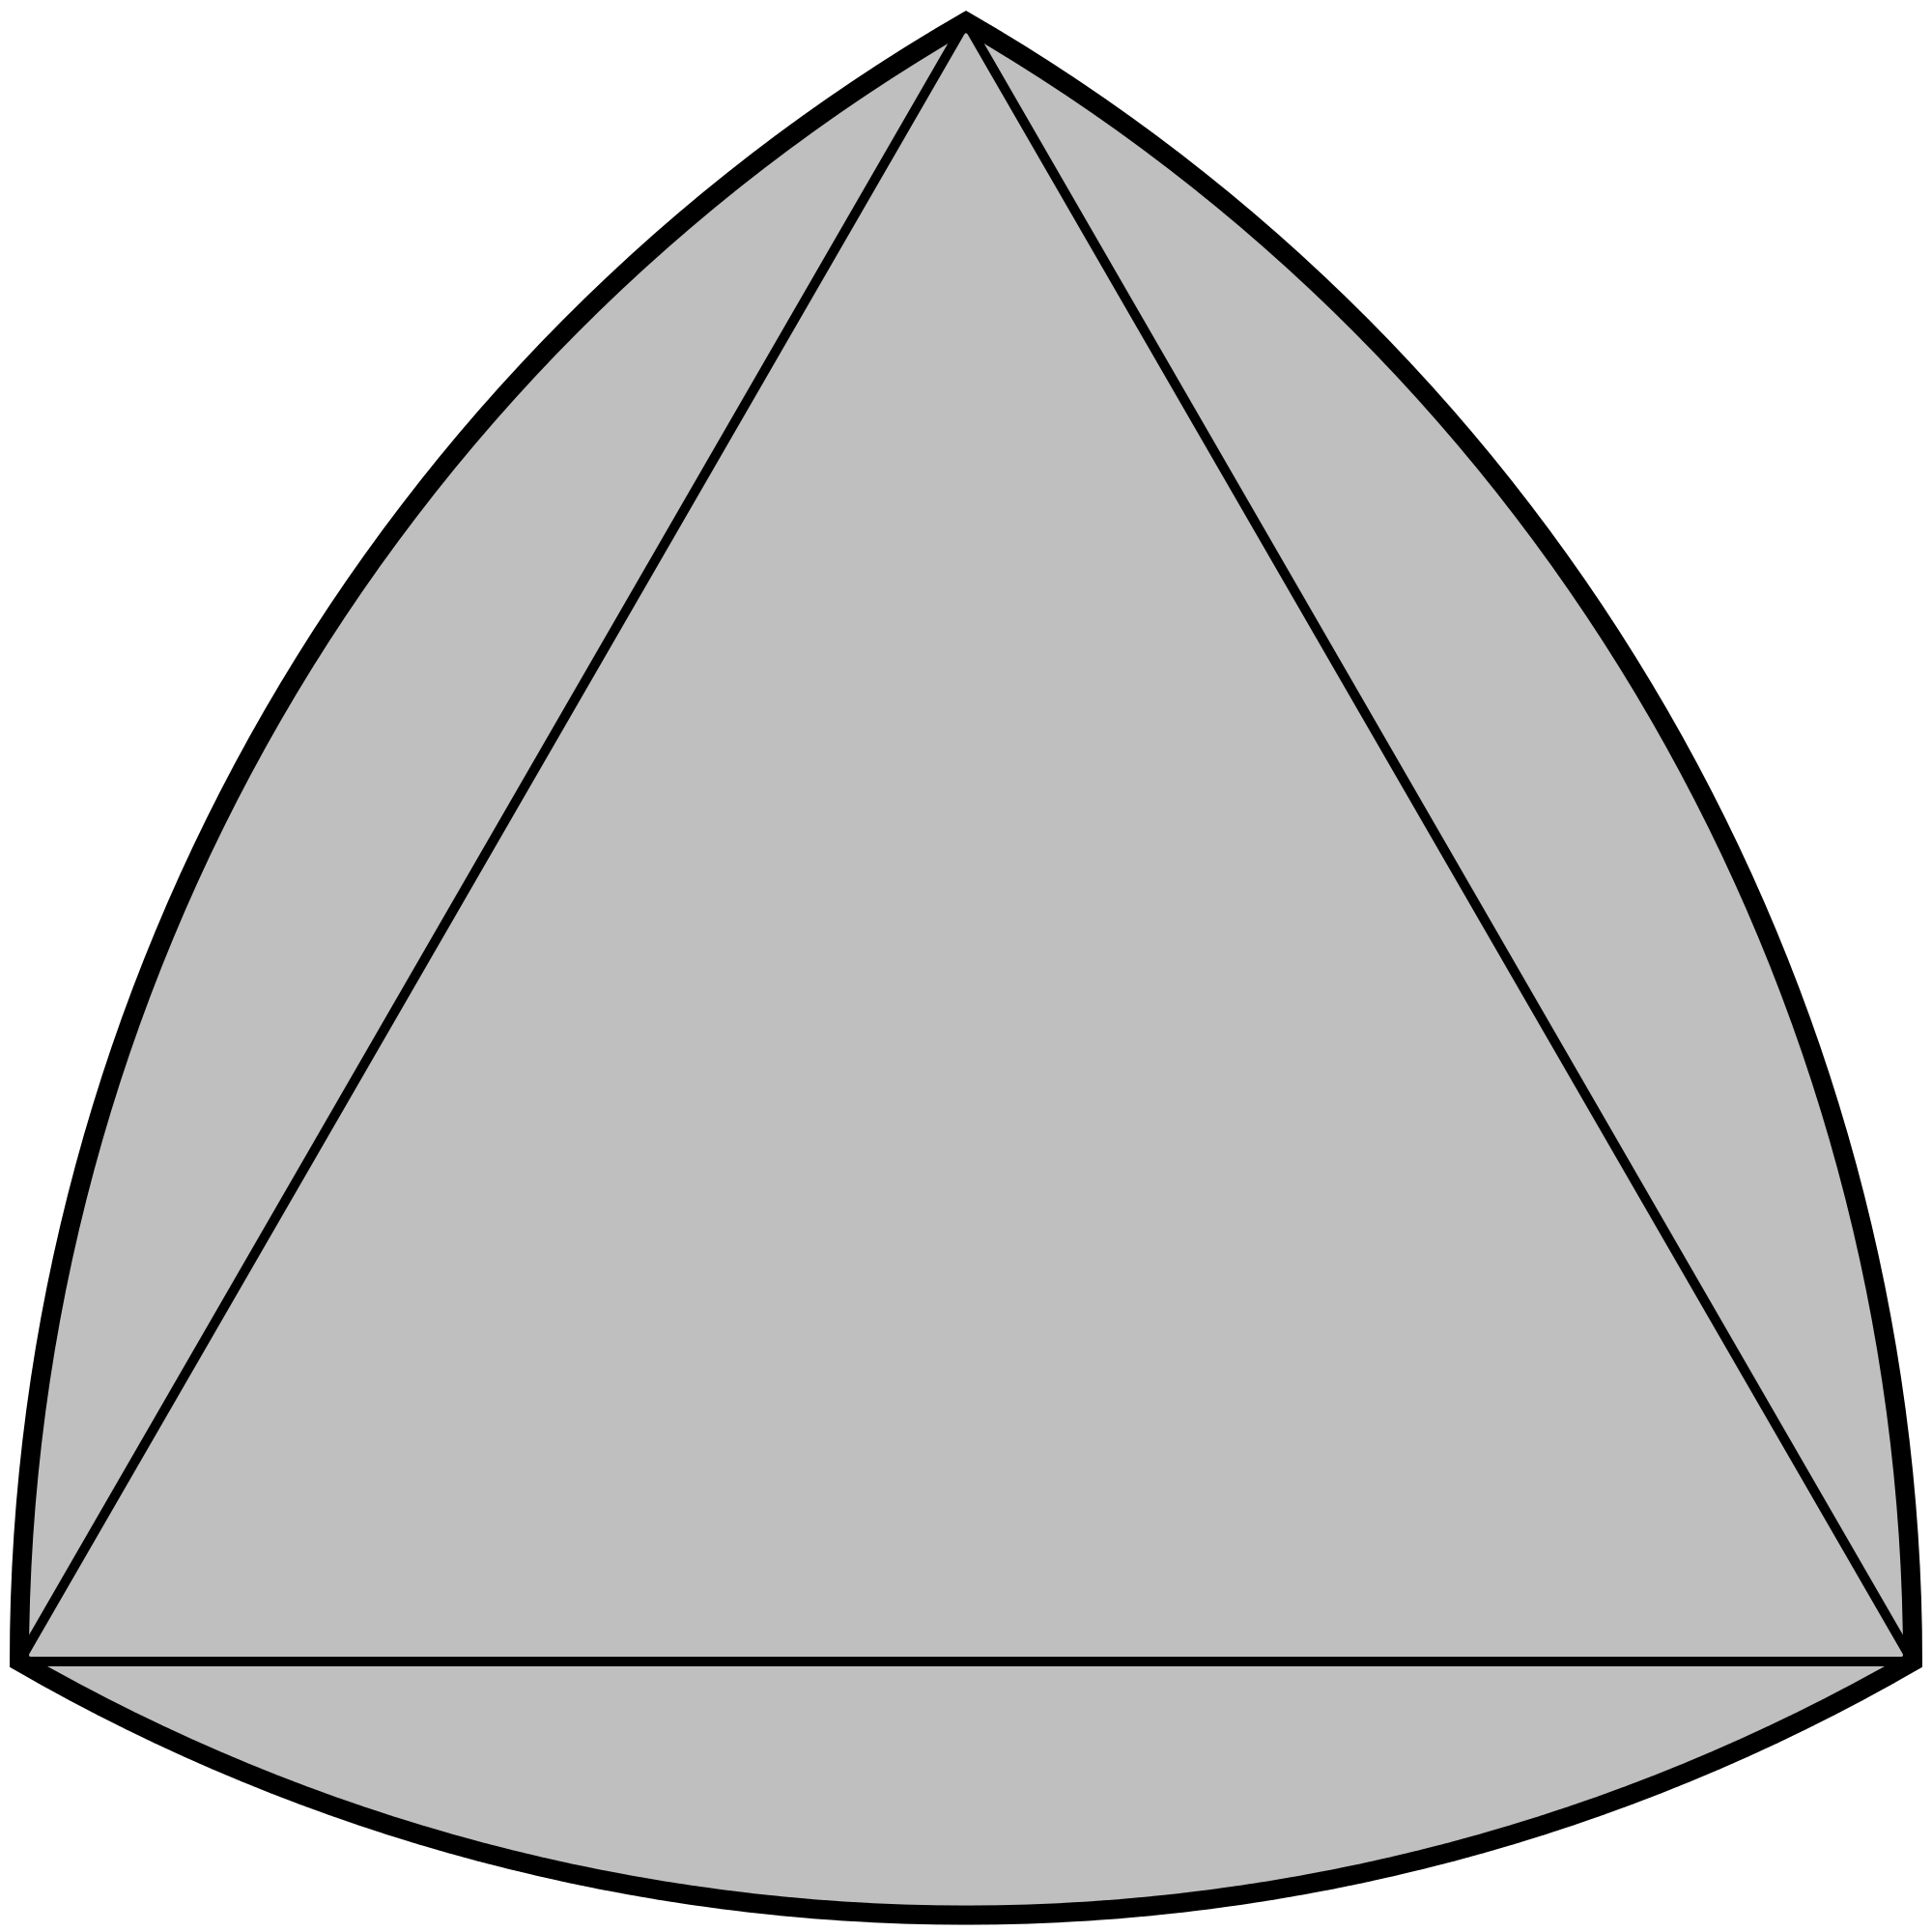 Triangle svg #1, Download drawings